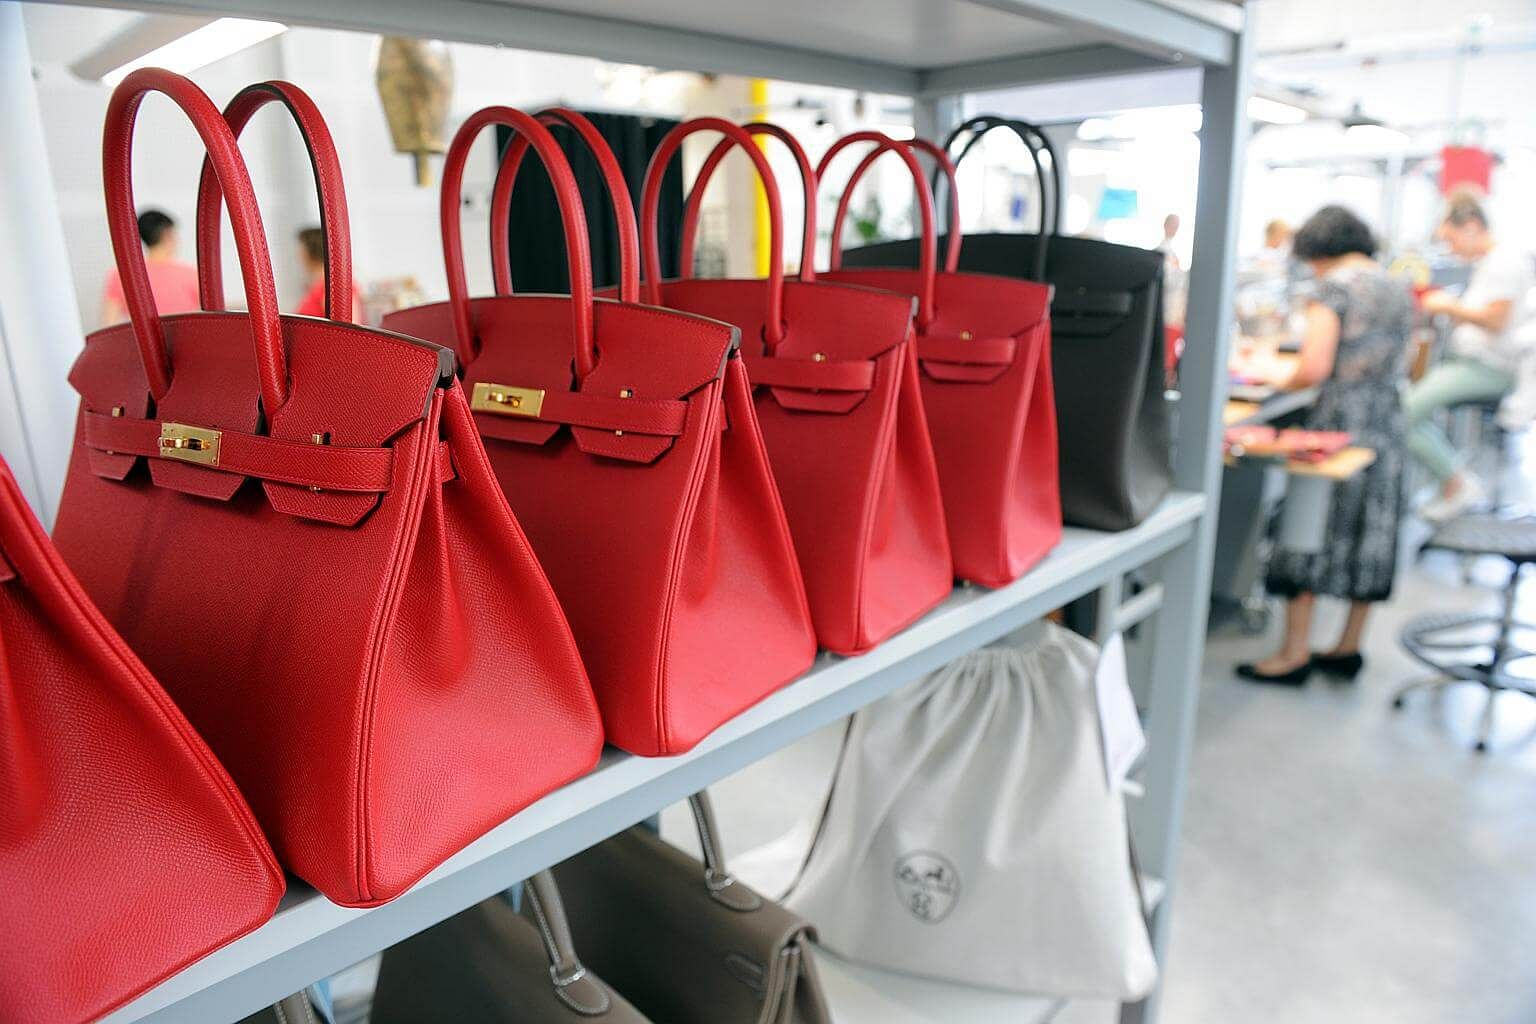 a79ba1a7af17 284 luxury handbags seized from Najib-linked apartments  5 things ...